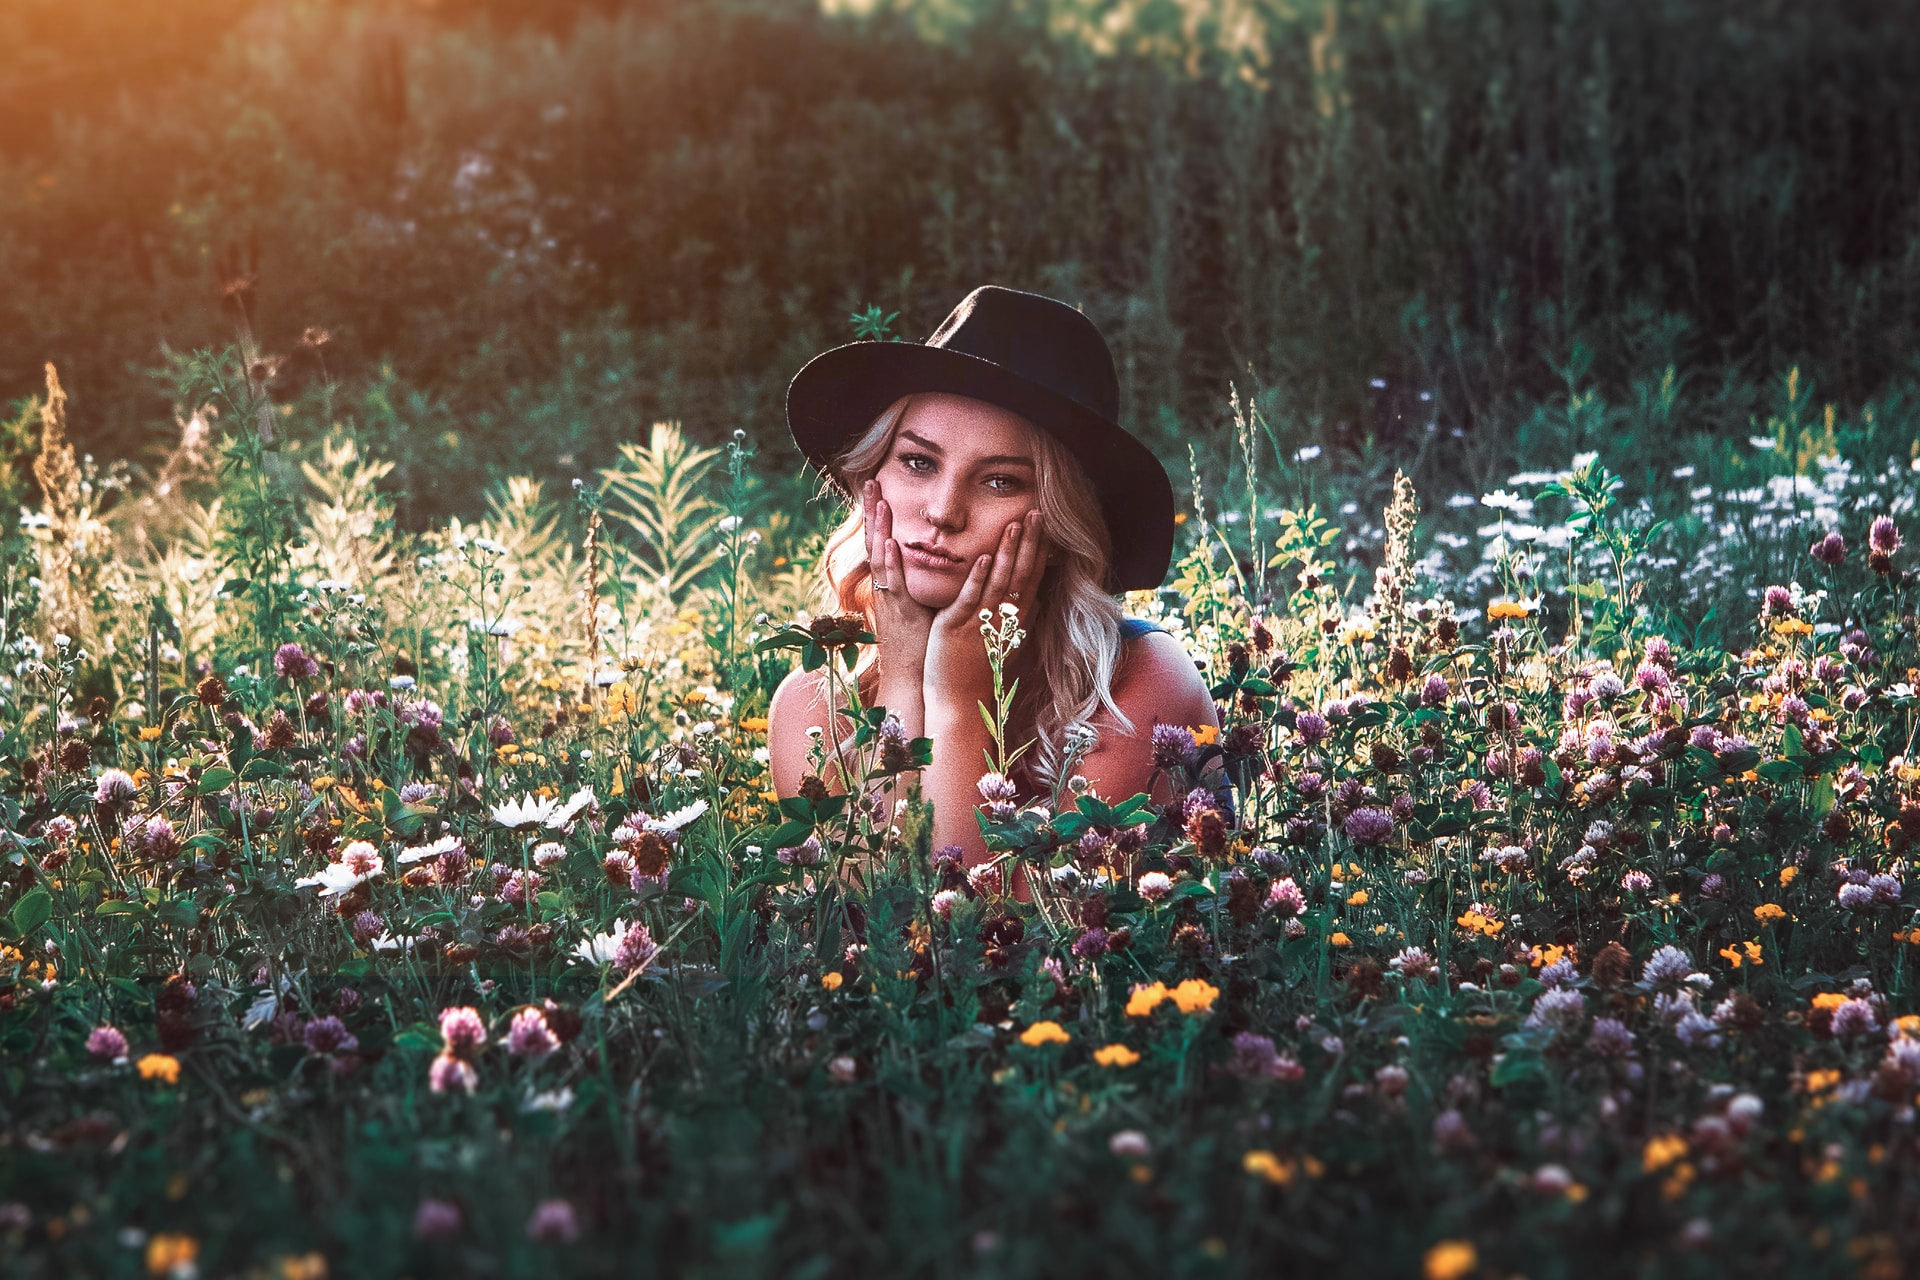 woman in black hat on flower field during daytime